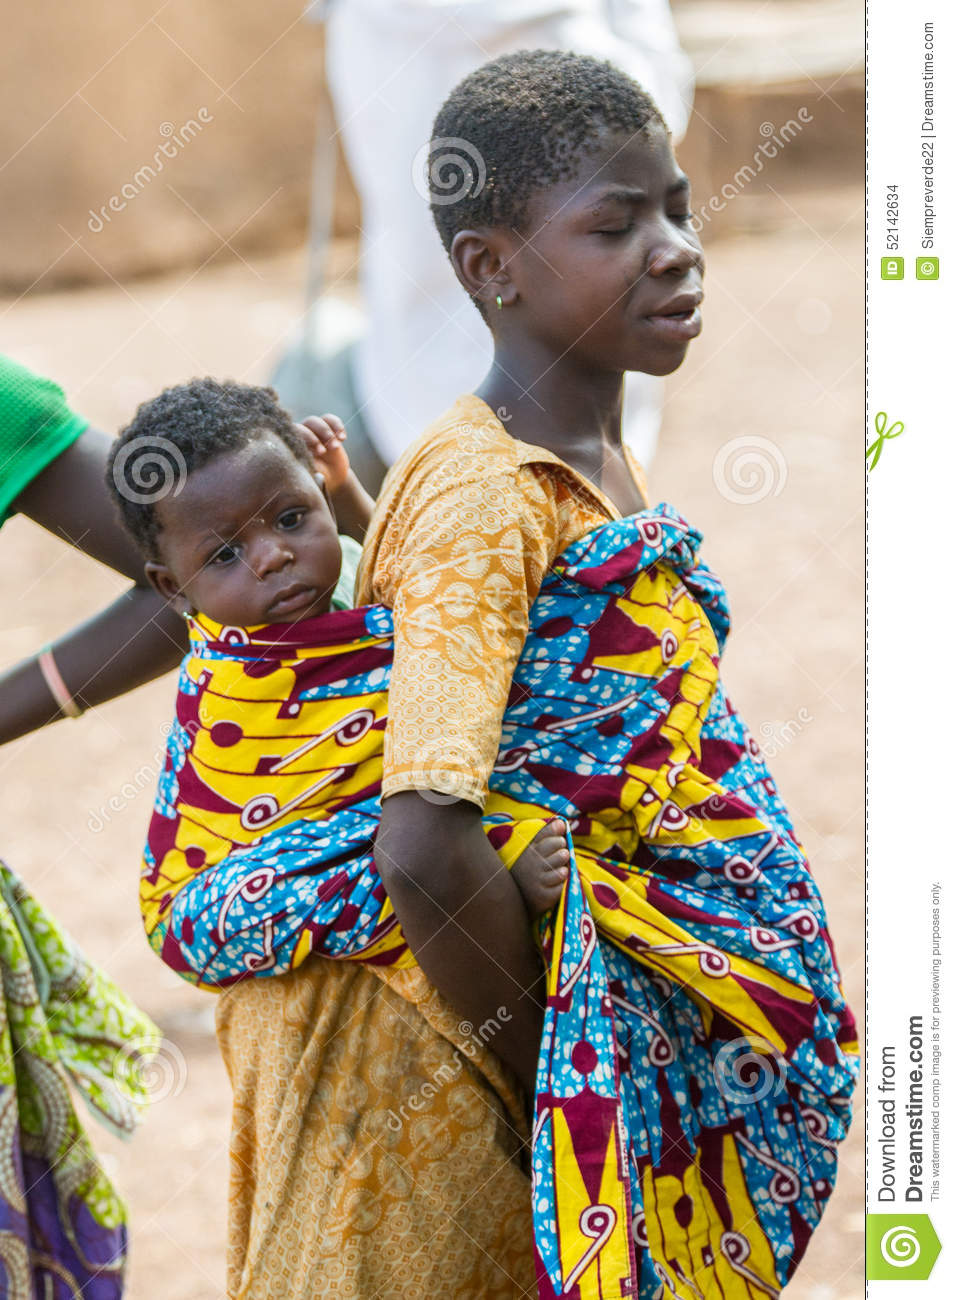 8230dc04bd063 People in GHANA editorial stock image. Image of mali - 52142634